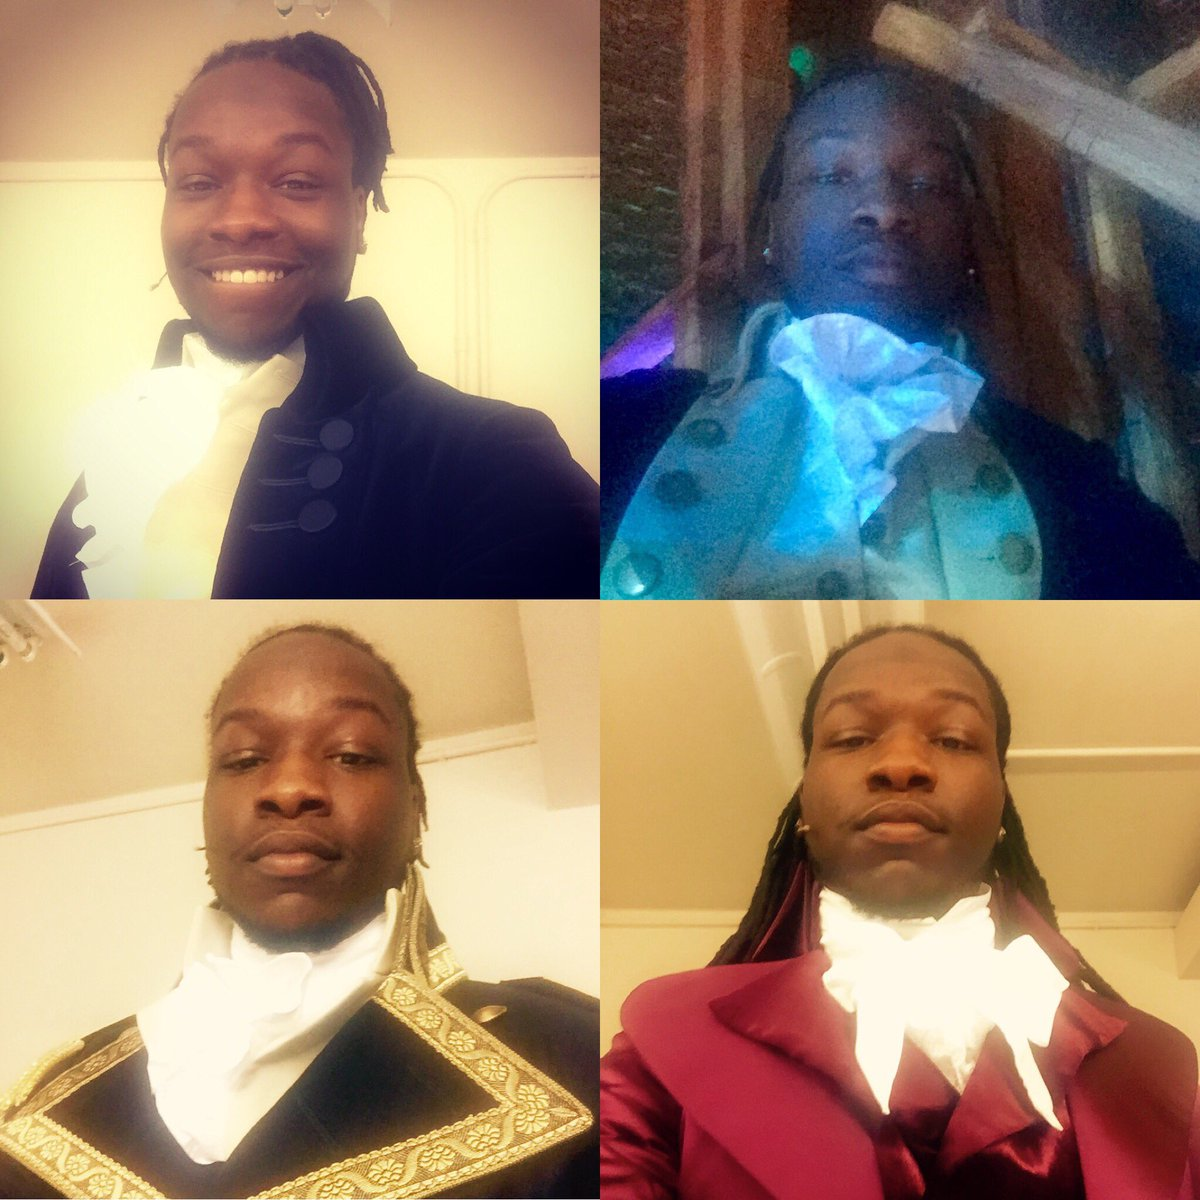 Chris Lee On Twitter Favorite Look Between Lafayette And Jefferson Go Hamilton Hamiltonchi Leefayefferson Icantdecide Implayingdressup Https T Co Zyaccrzx8f